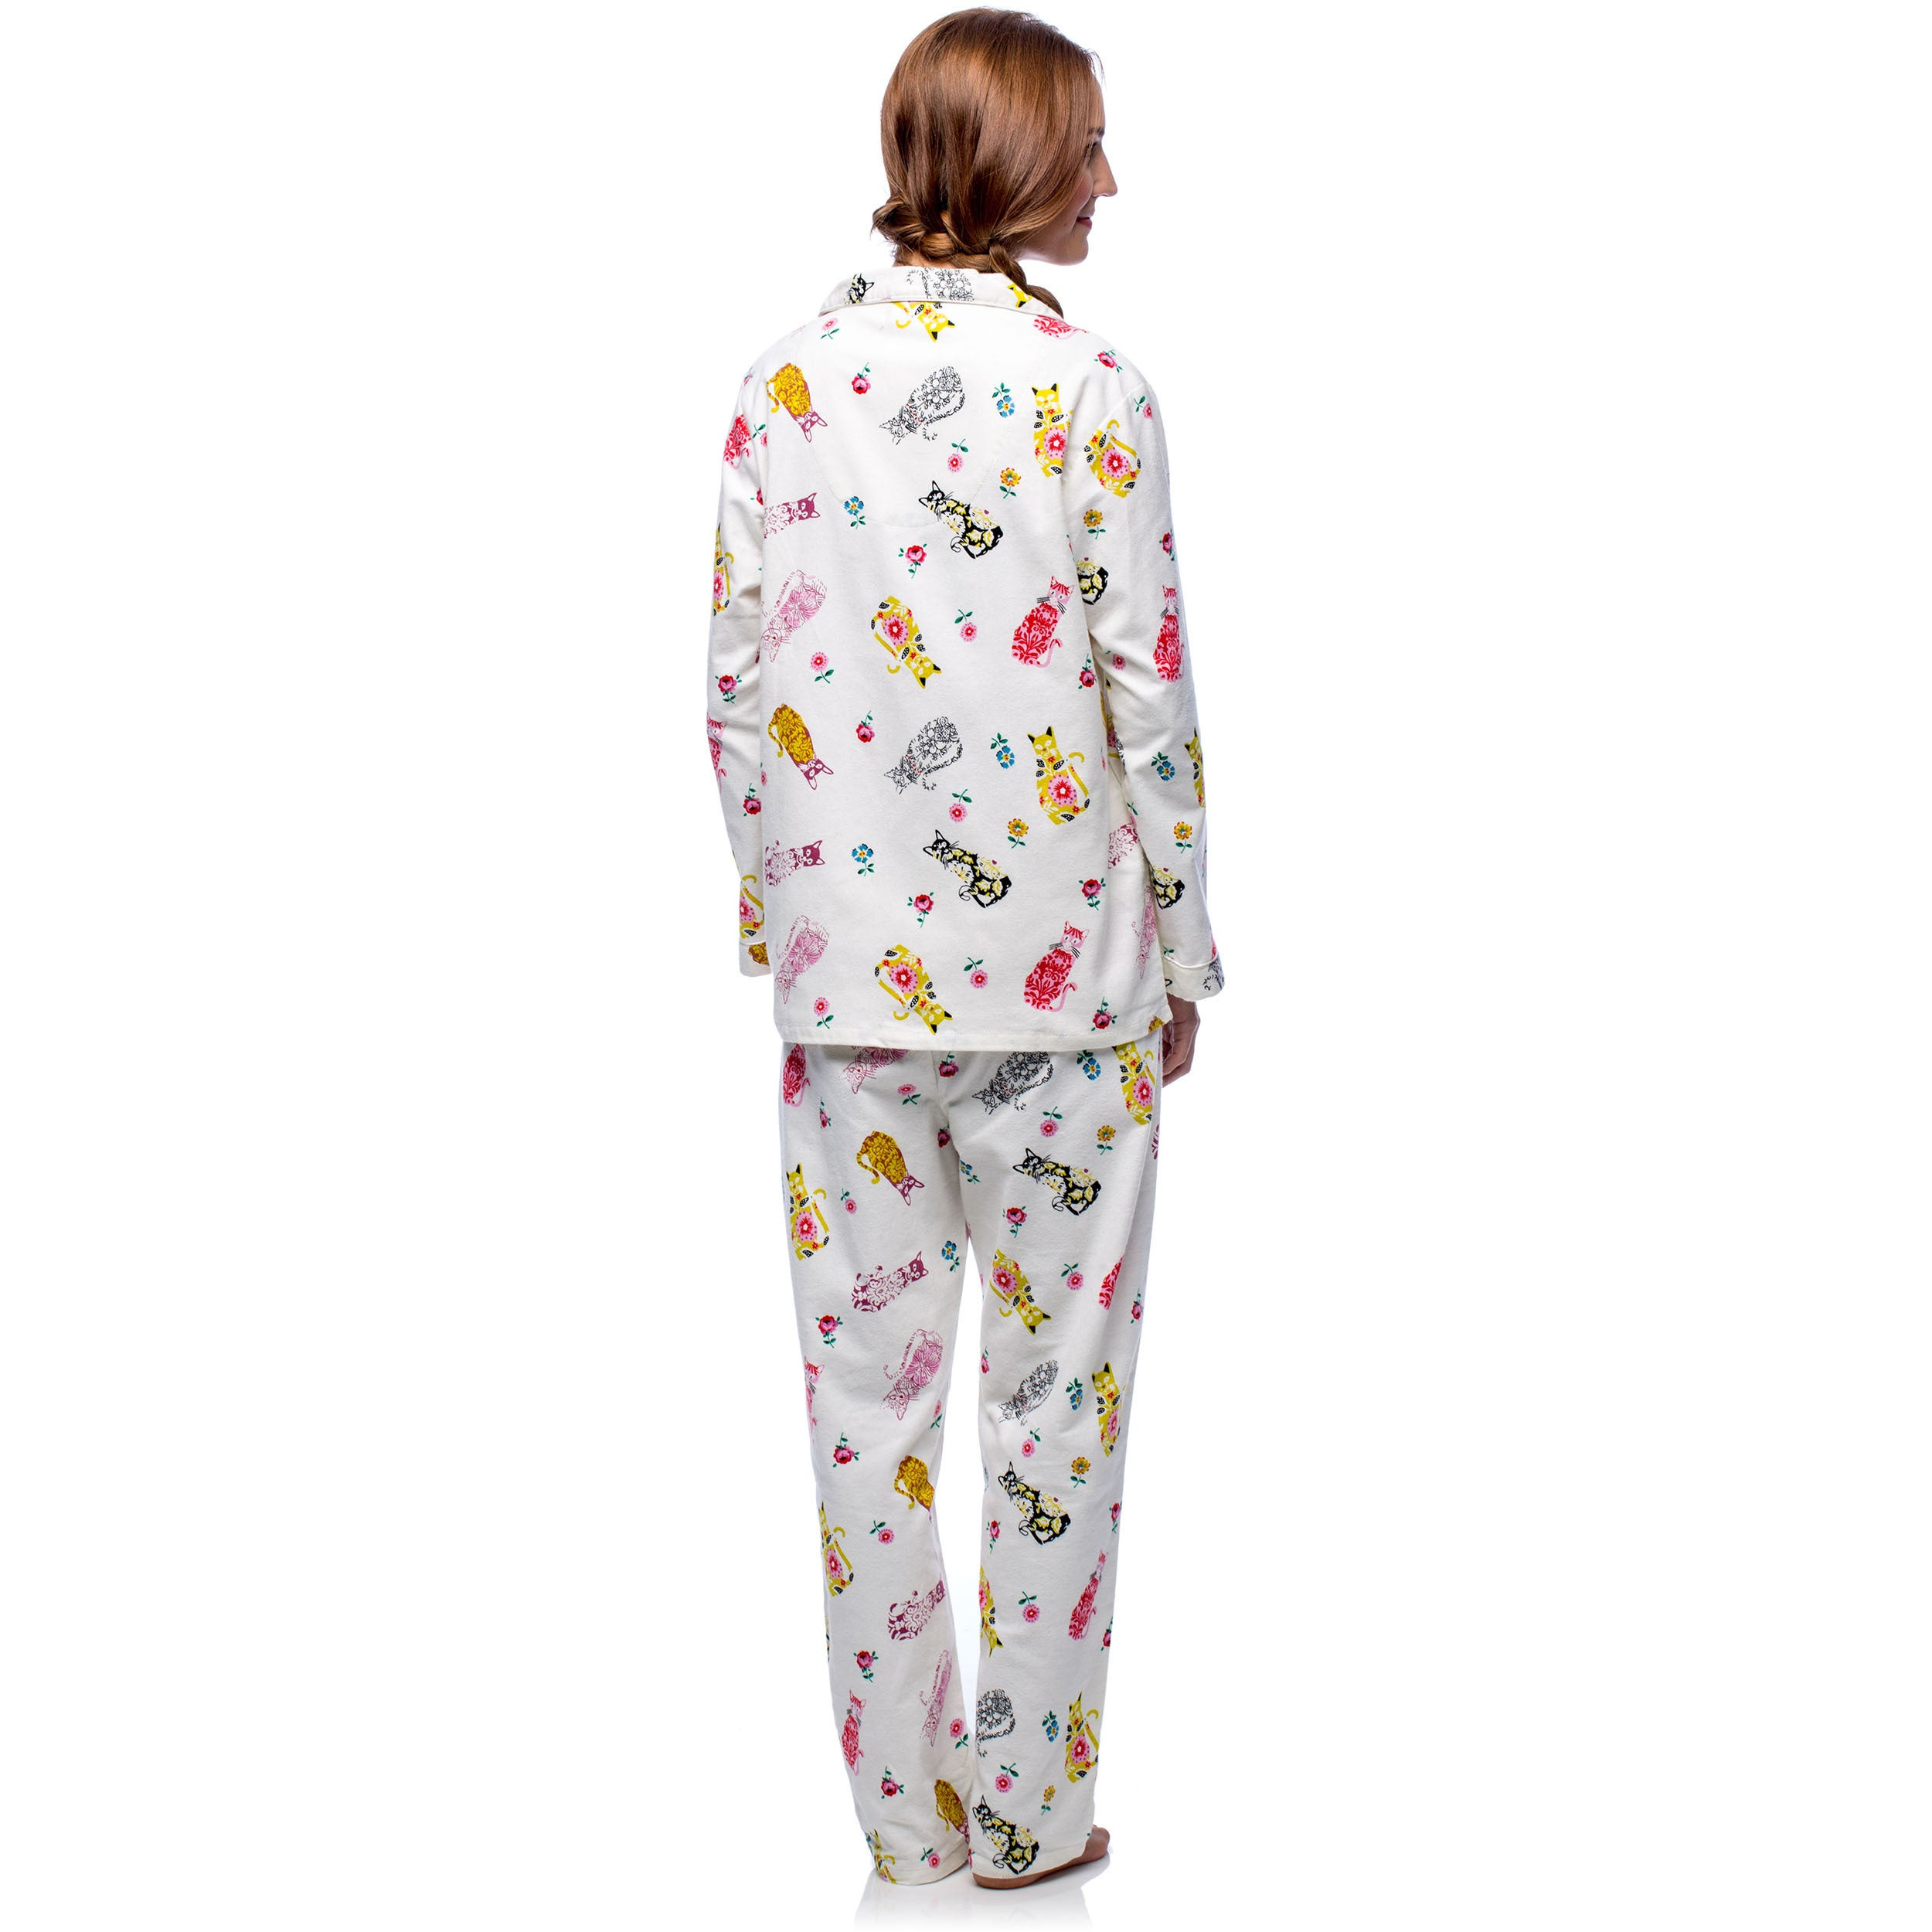 580b9f876a Shop La Cera Women s Cat Print Cotton Flannel Pajama Set - Free Shipping  Today - Overstock - 10706613